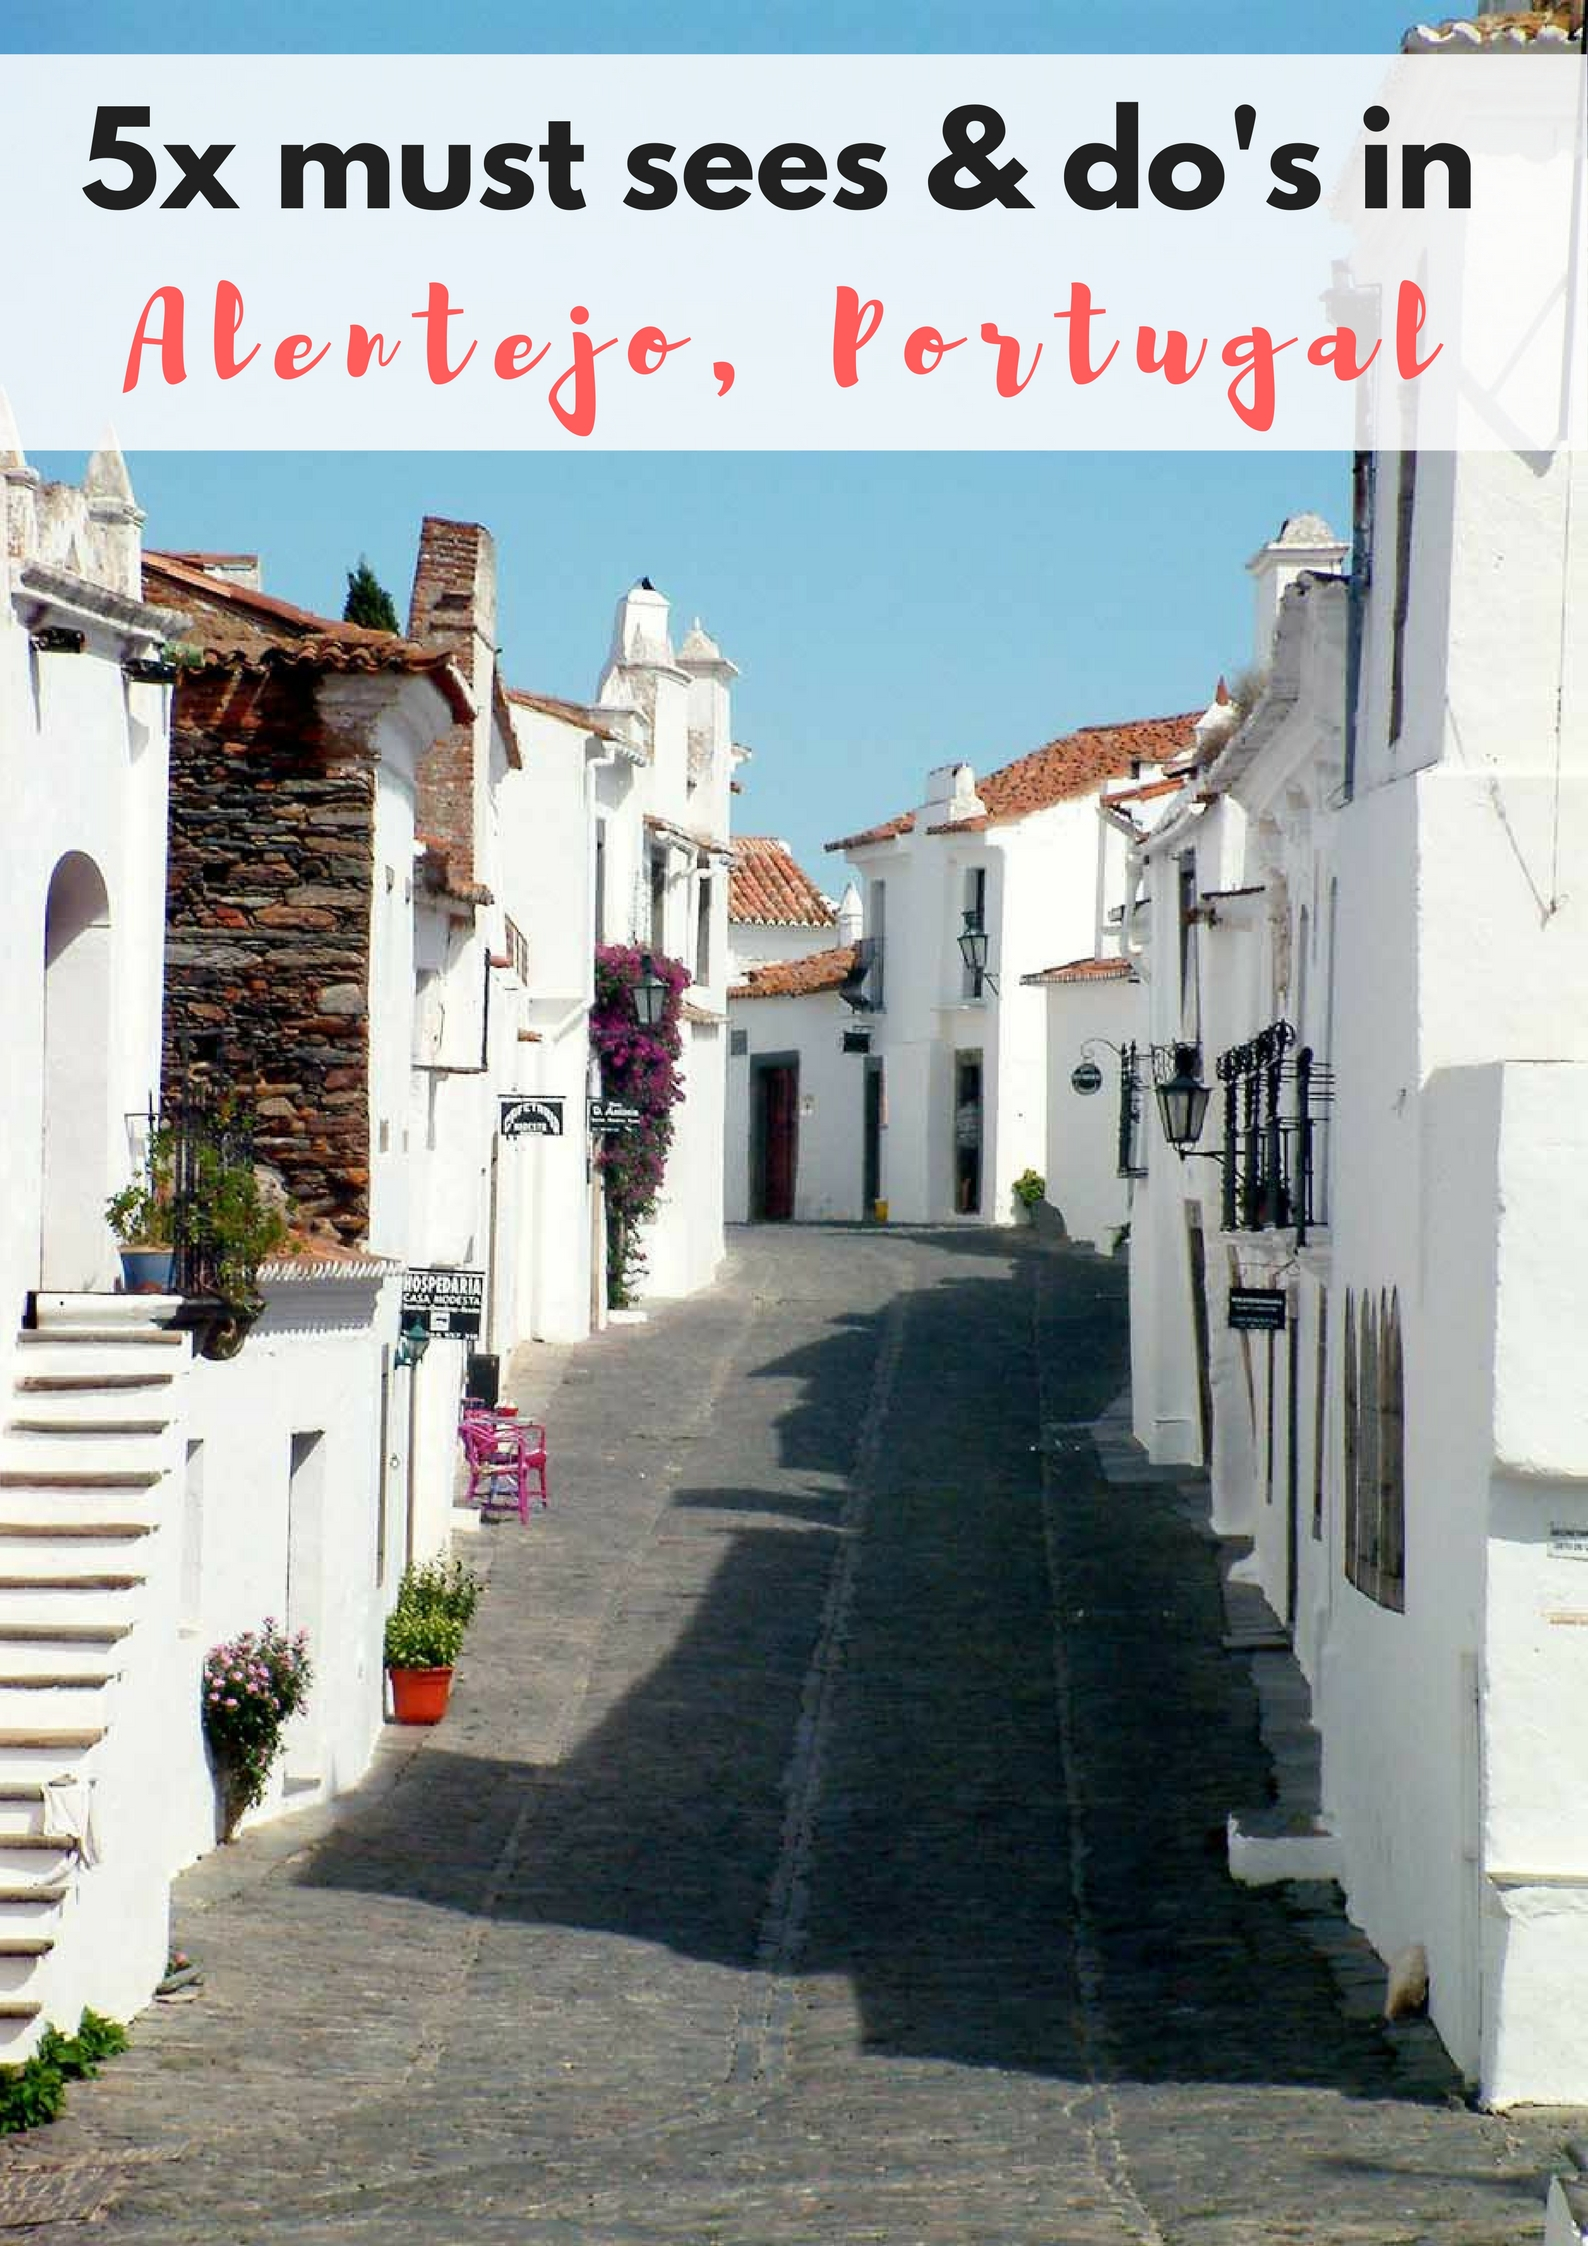 5x must sees and do's in the region Alentejo, Portugal - Map of Joy